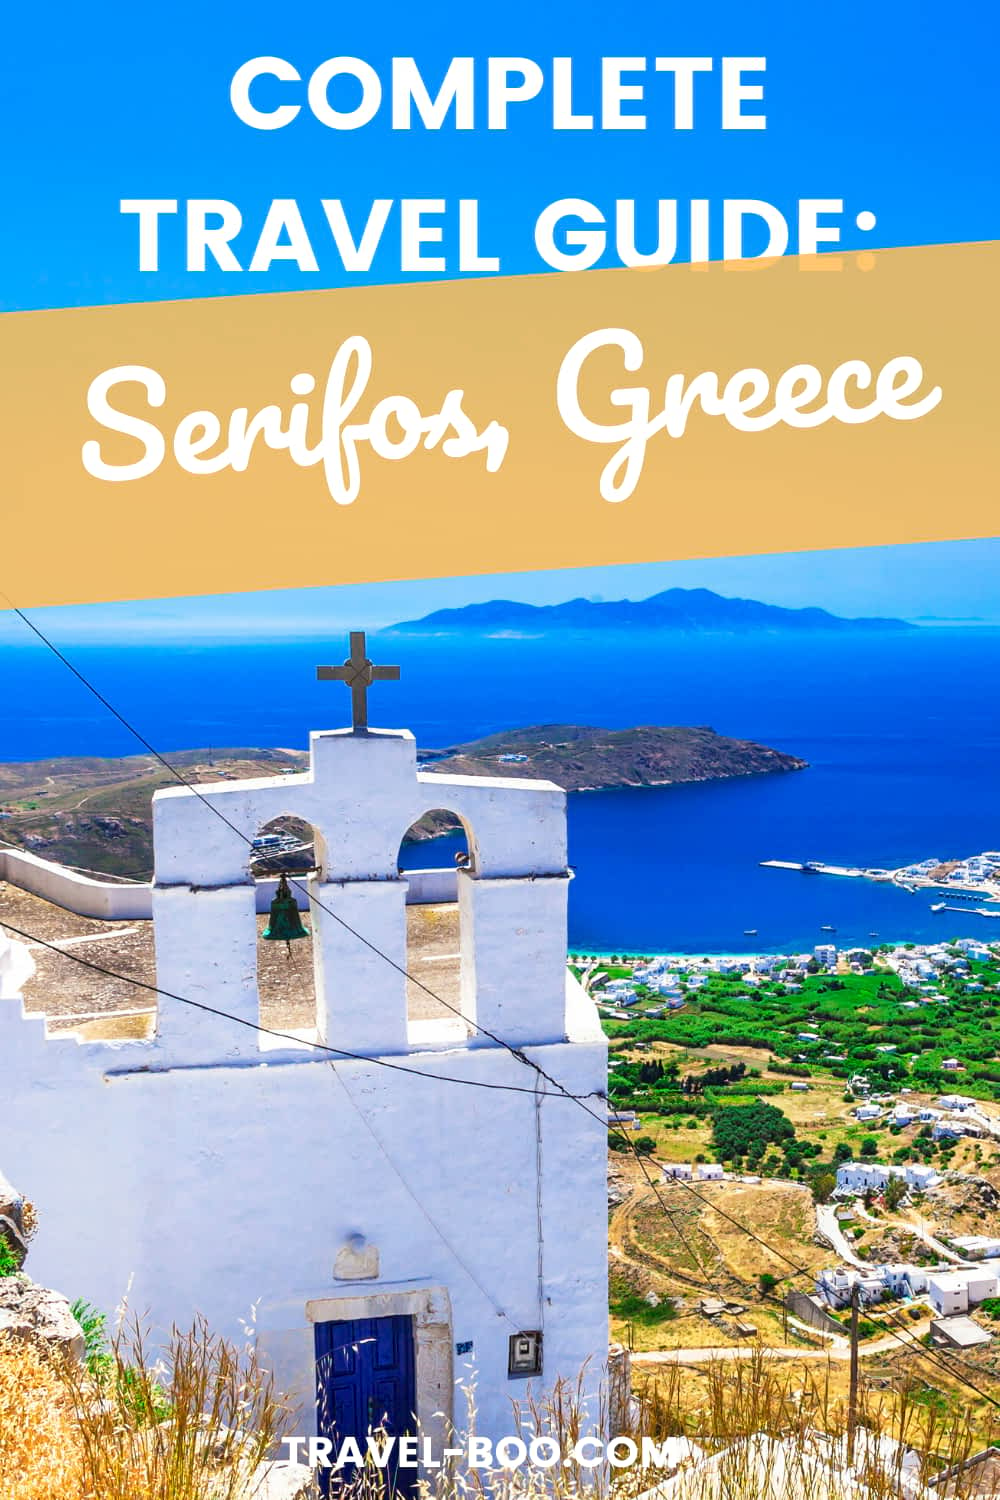 Plan to visit gorgeous Serifos Island in Greece? Read my guide which outlines everything you need to know to help plan the perfect visit to Serifos! Greece Travel Islands, Greece Travel, Greece Travel Guide, Serifos Greece, Serifos Travel, Greece Vacation, Greece Travel Tips. #greecetravelislands #serifos #greecetravel